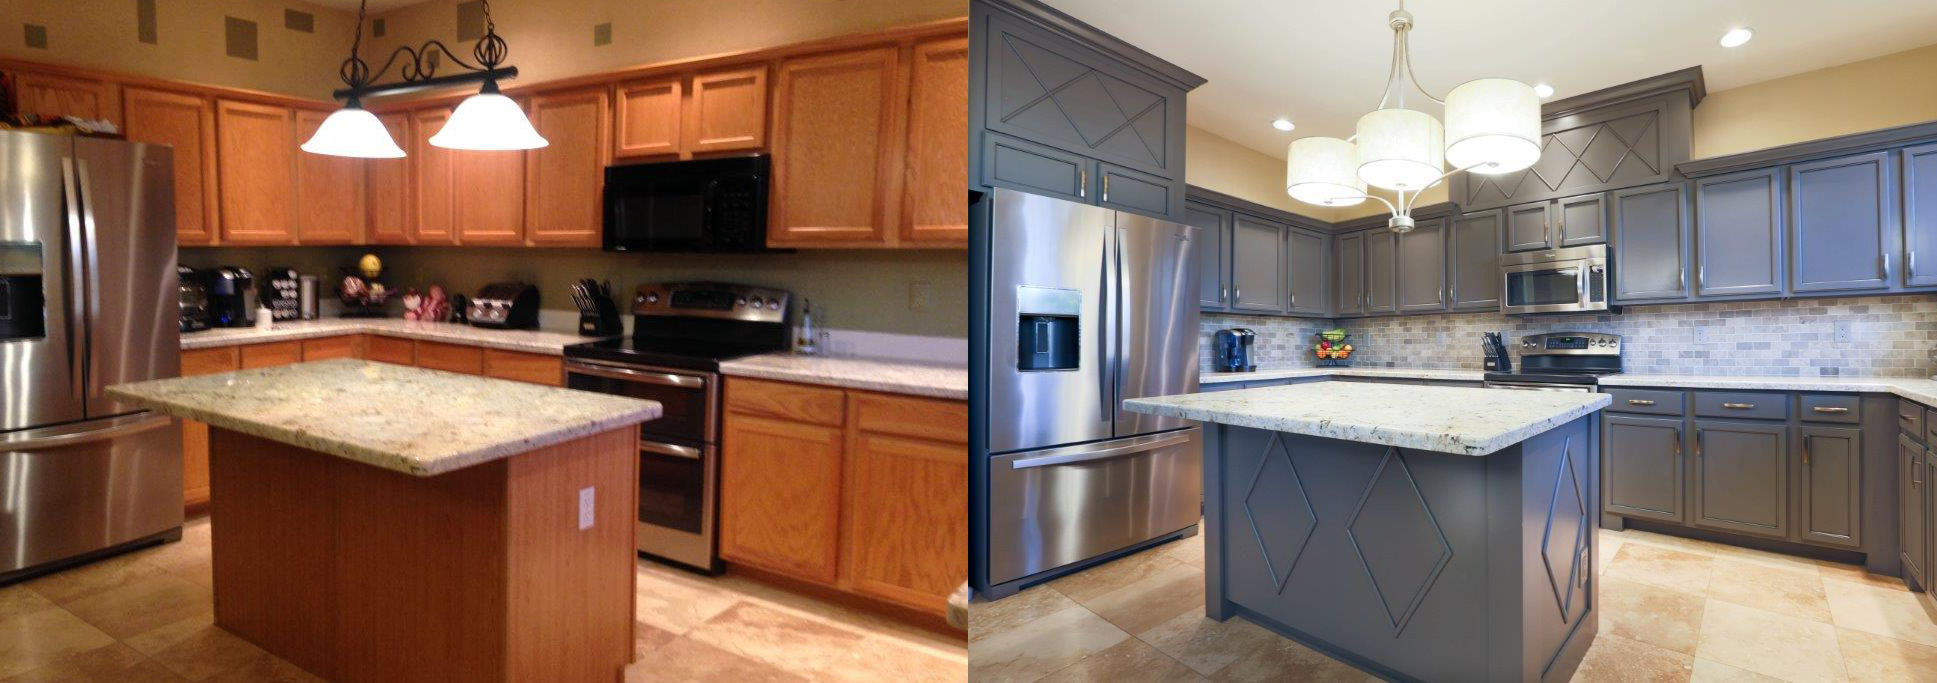 Cabinet Refinishing Phoenix Az Amp Tempe Arizona Kitchens